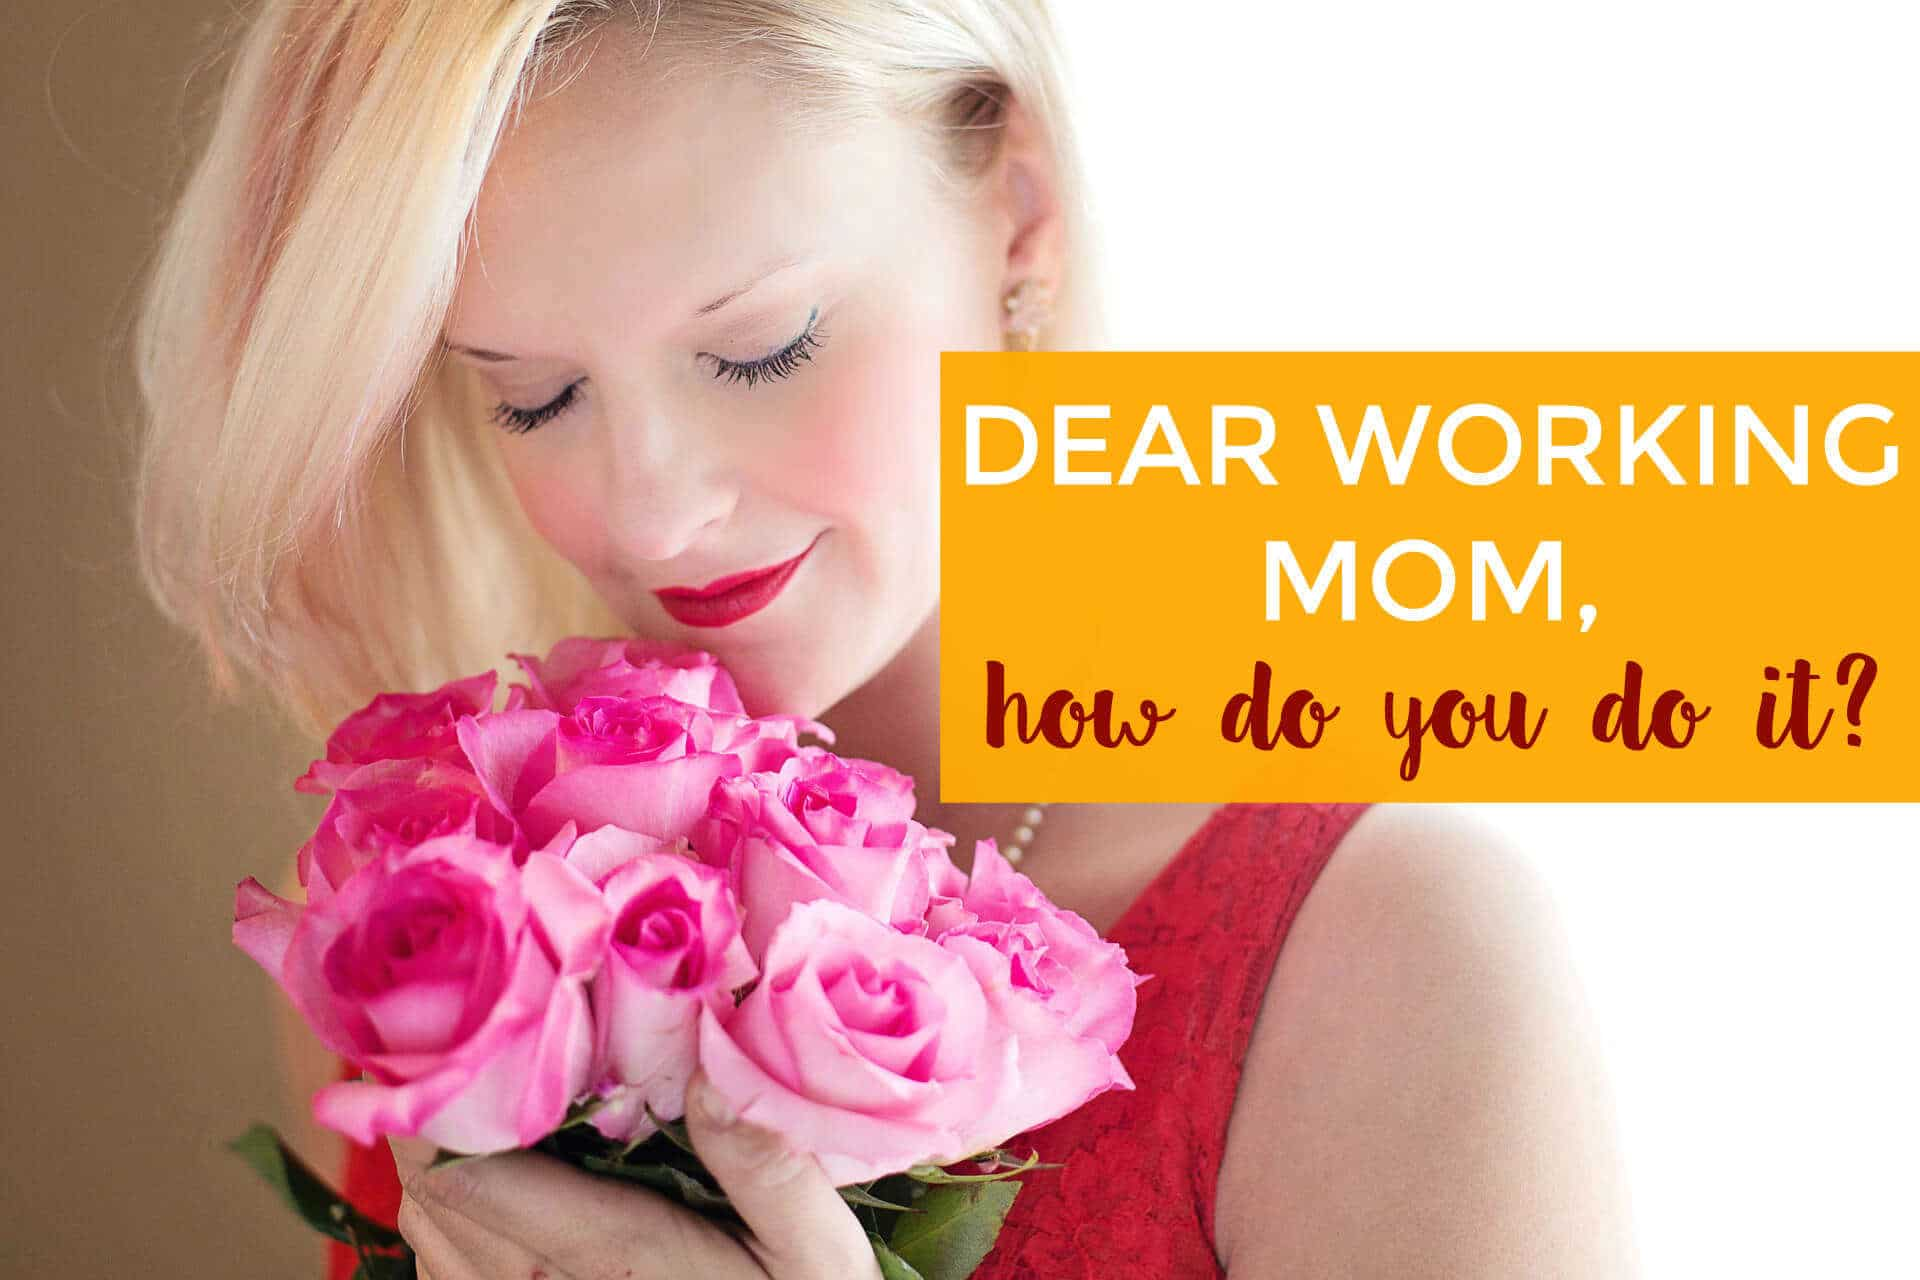 Dear Working Mom: How Do You Do It?